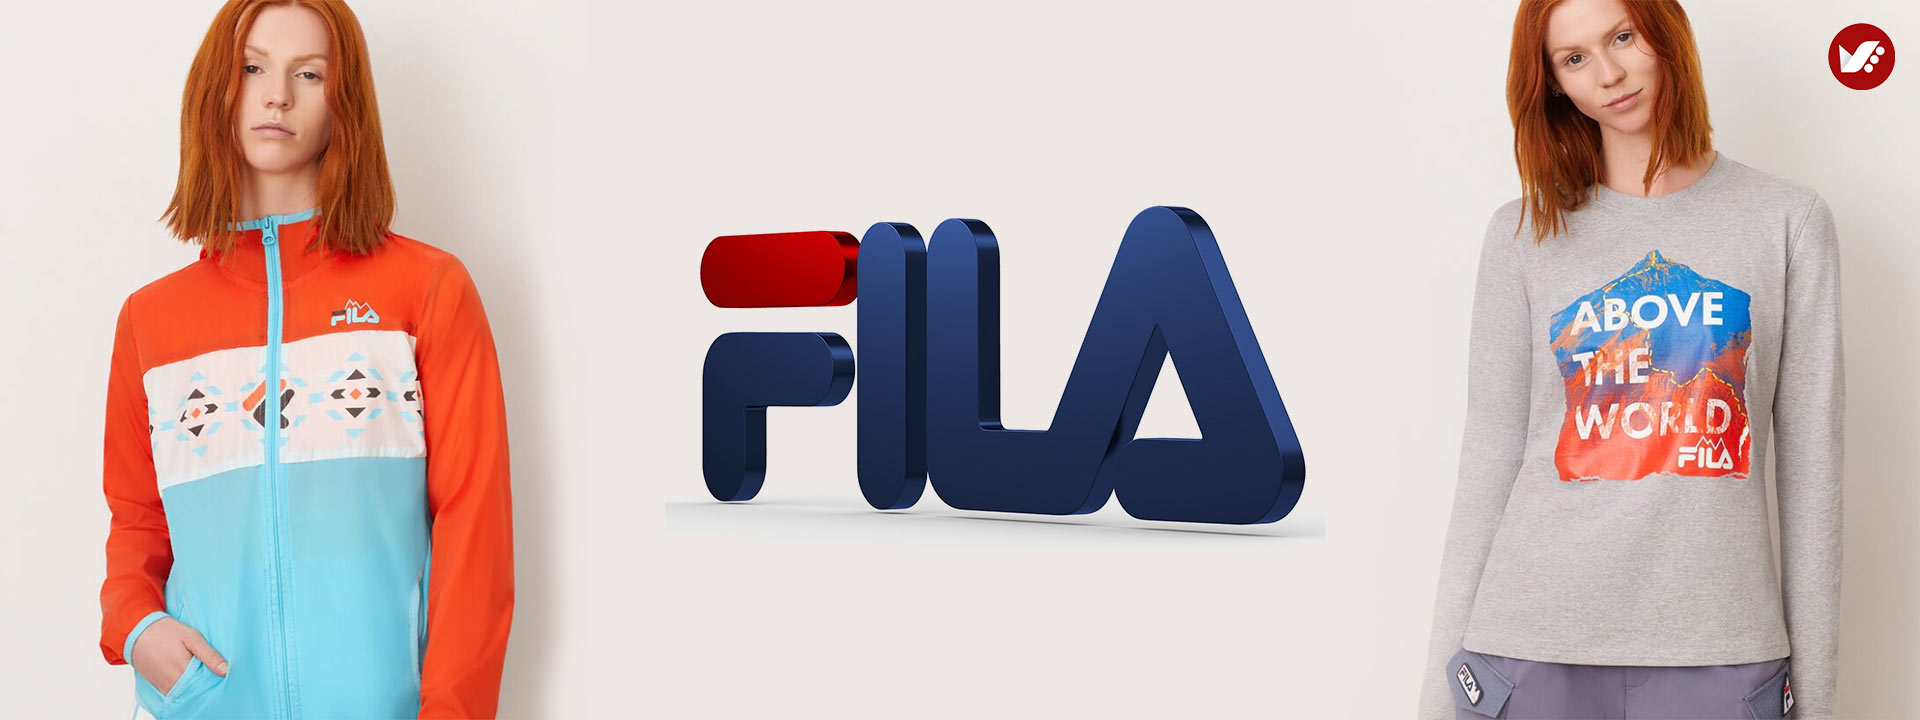 fila wallpaper - فیلا